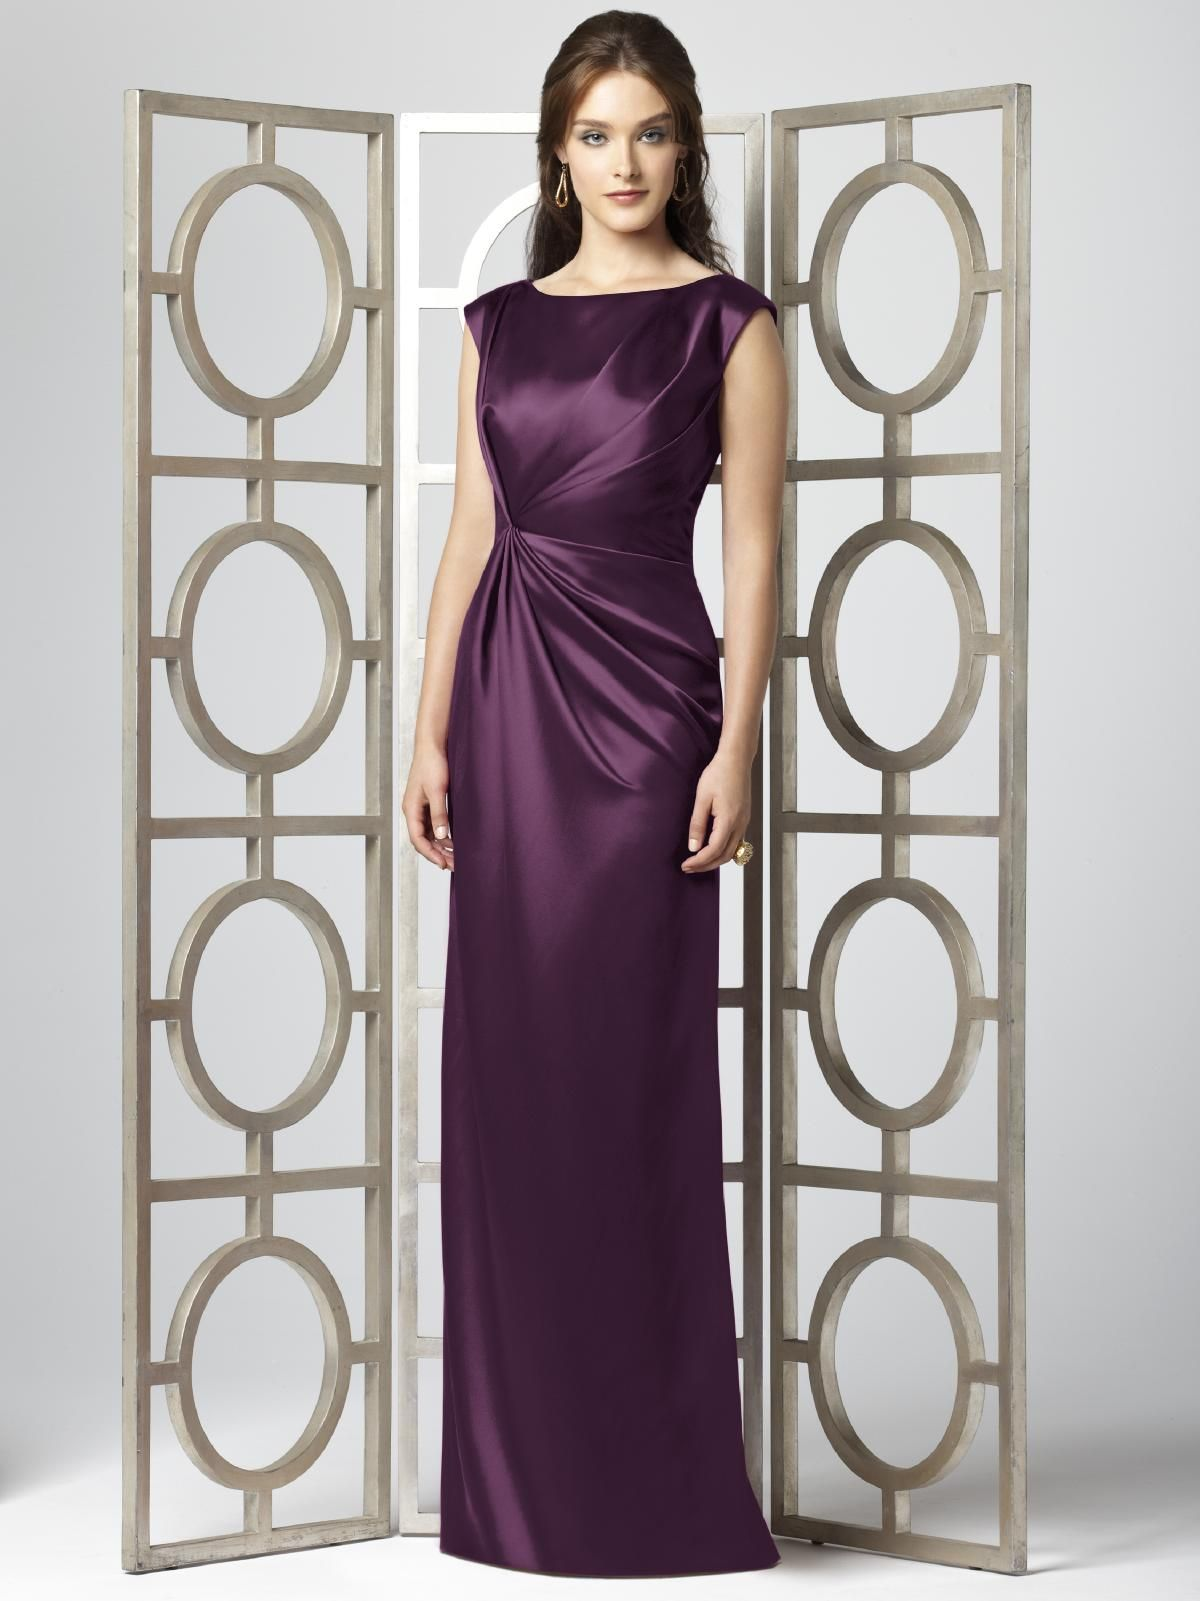 Modest bridesmaids dresses by dessy modest bridesmaids dresses modest bridesmaids dresses by dessy ombrellifo Gallery